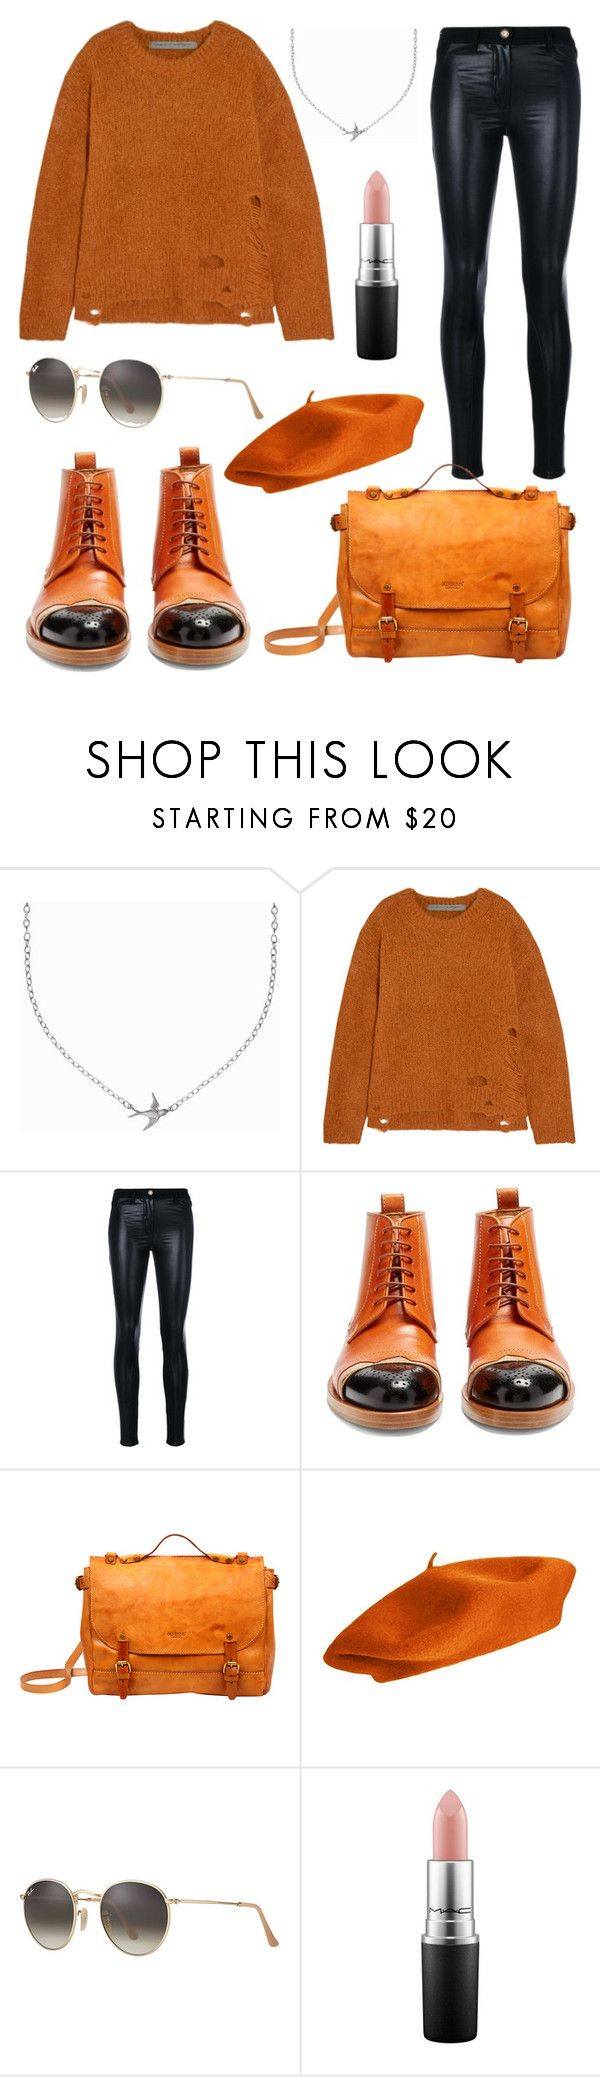 """""""Untitled #2196"""" by avrilandd ❤ liked on Polyvore featuring Minnie Grace, Raquel Allegra, Versace, Maison Margiela, Old Trend, Ray-Ban and MAC Cosmetics"""